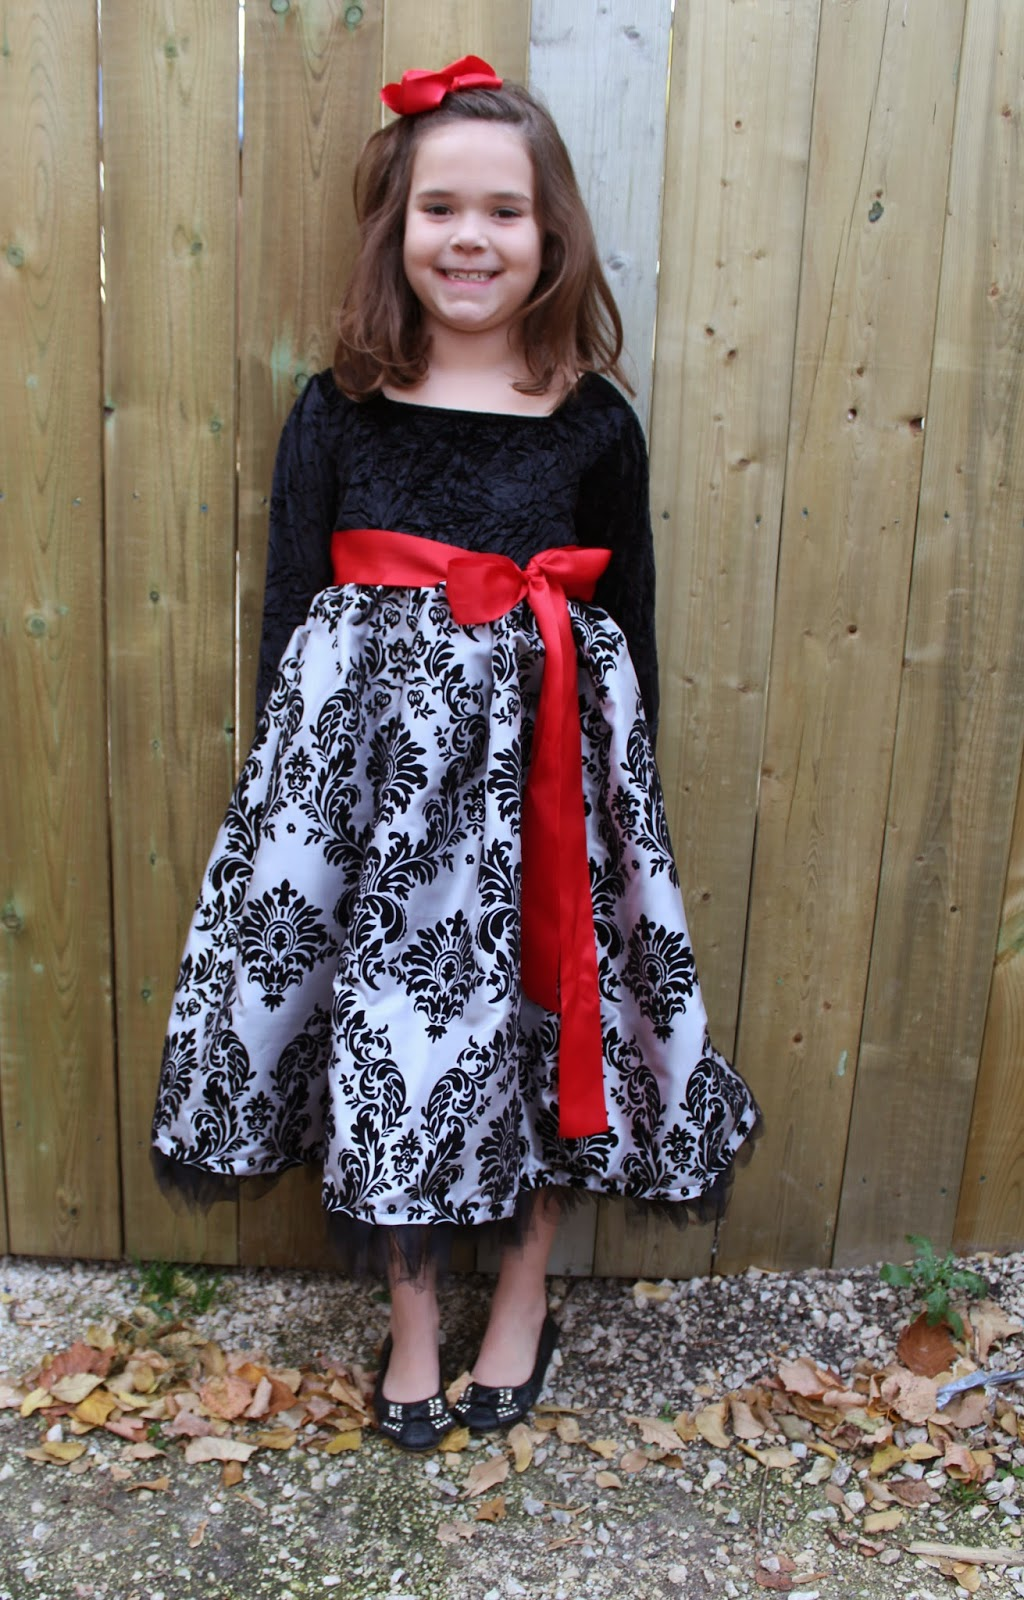 Holly & Ivy Party Dress from GYCT Designs